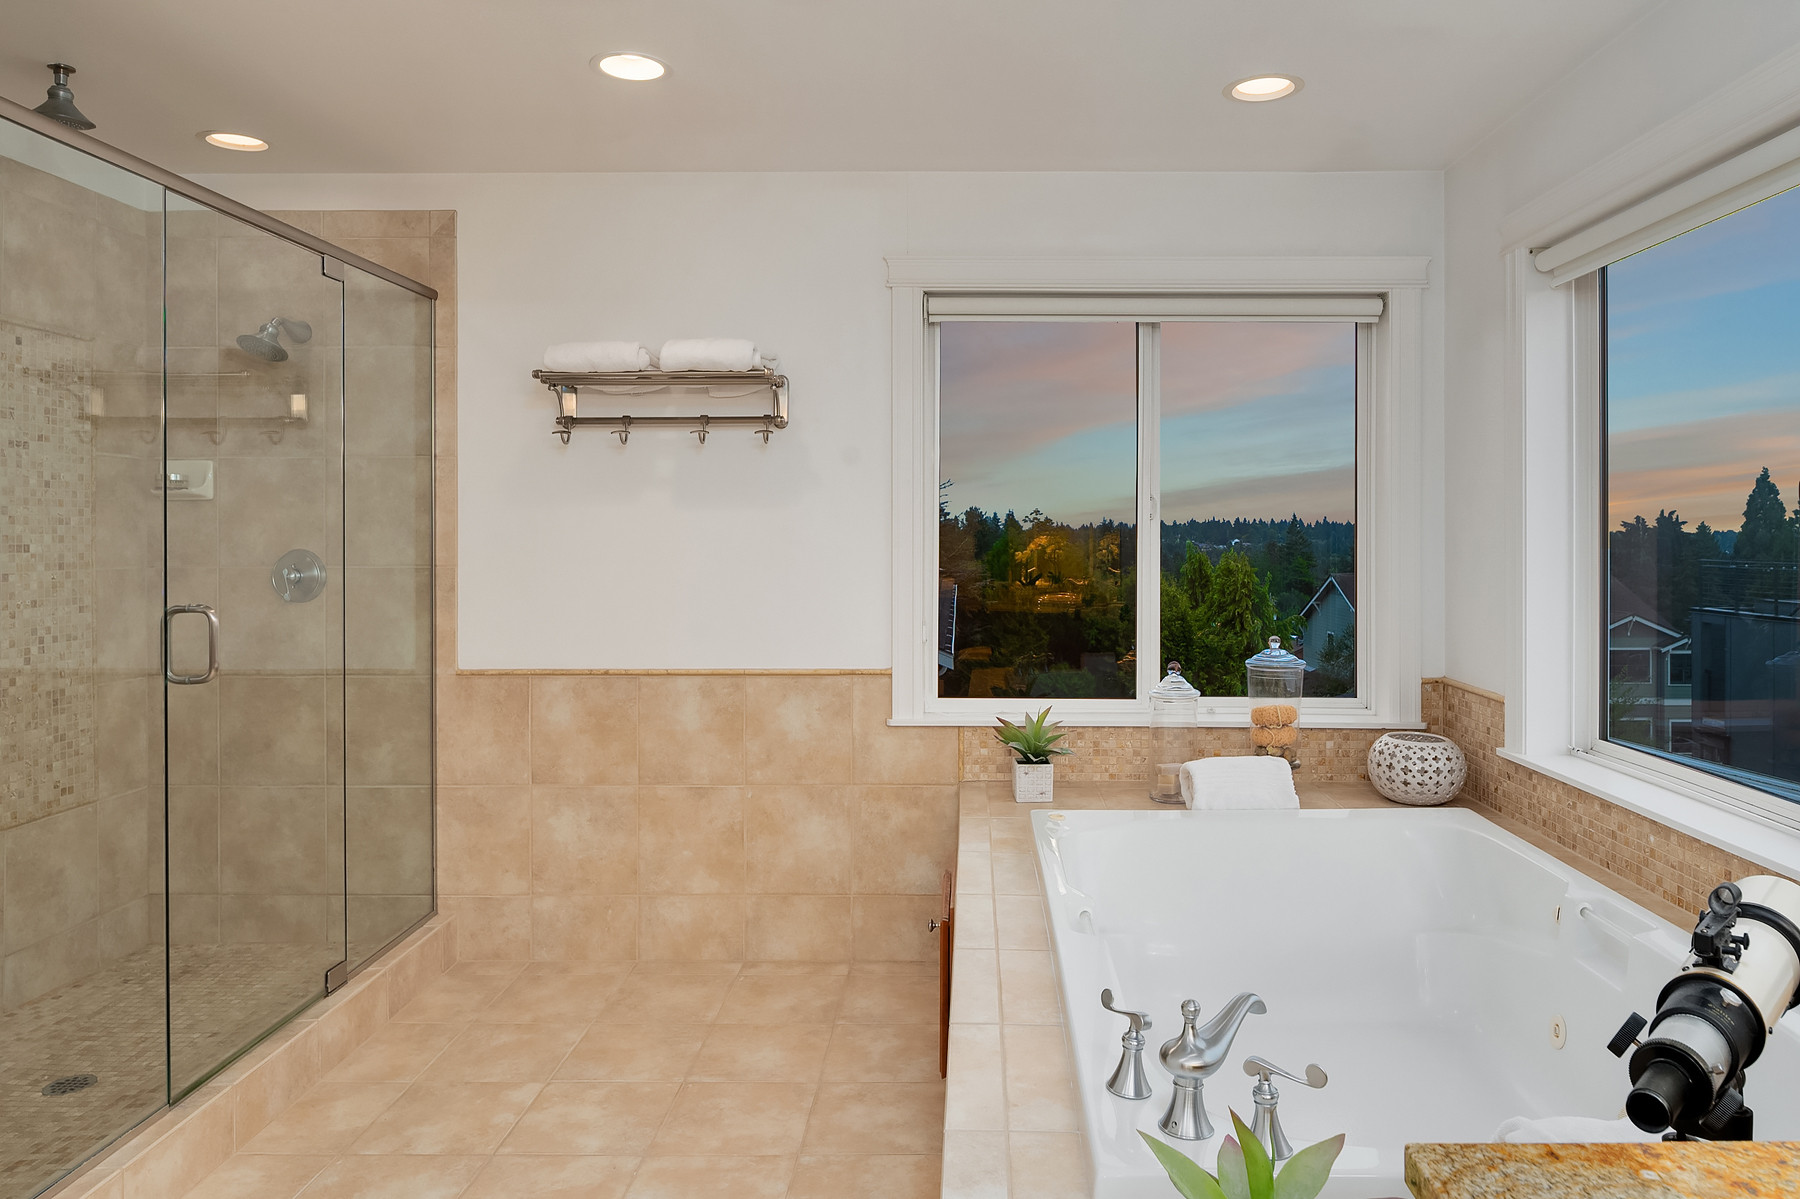 Master bathroom with walk-in shower and jetted tub